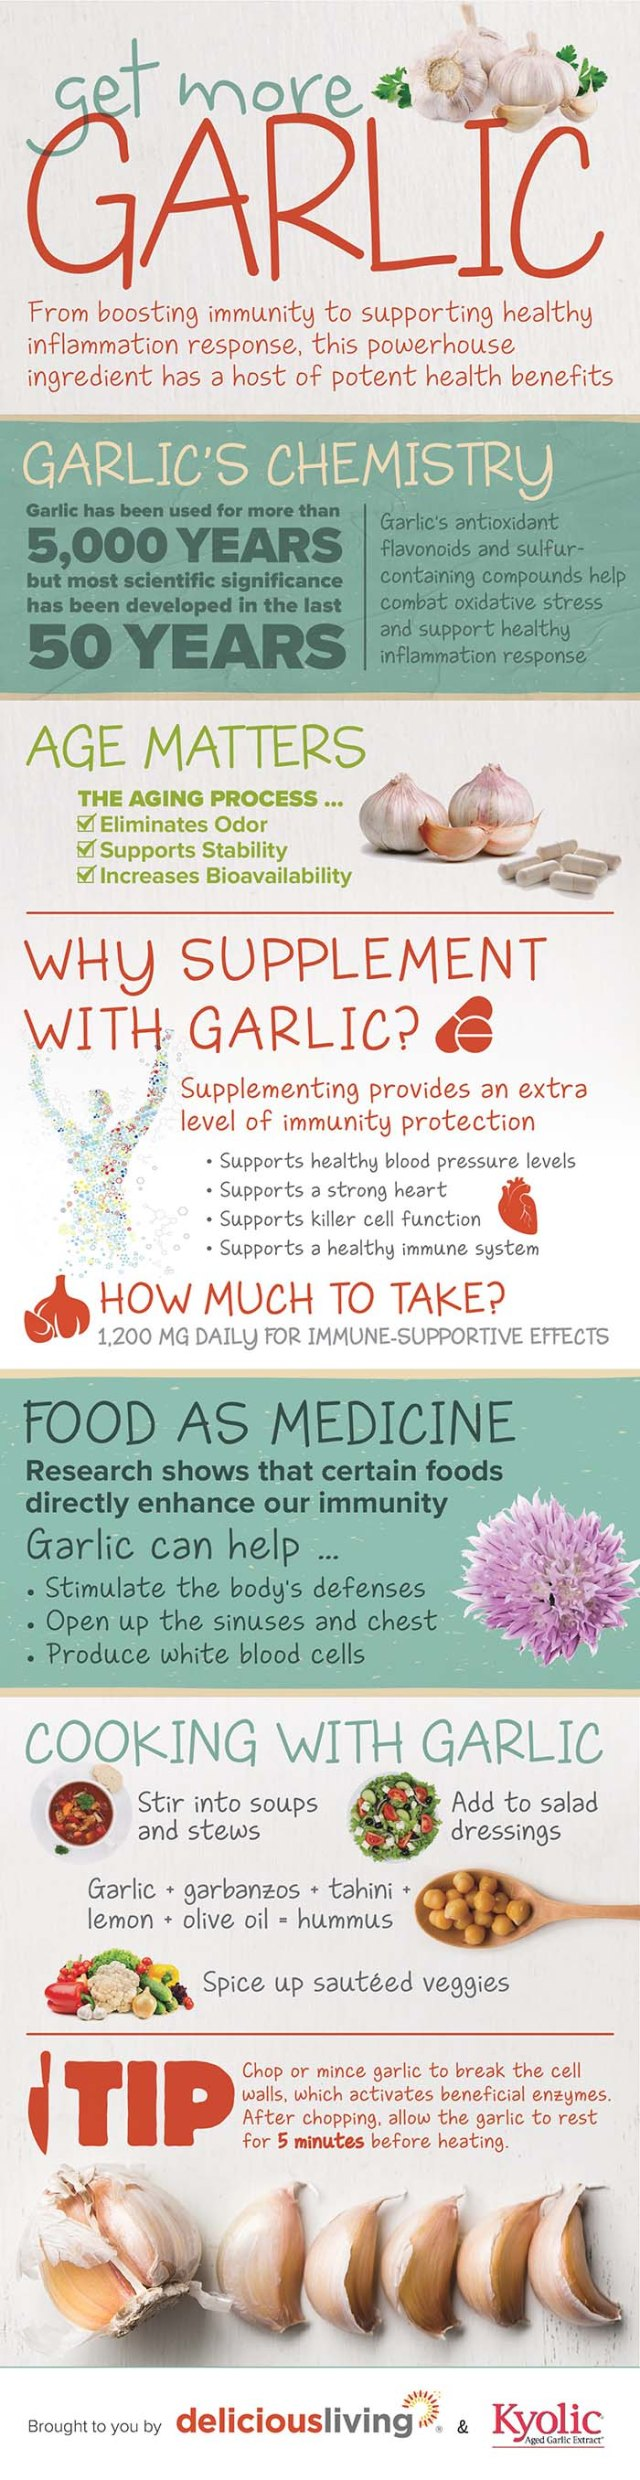 Benefits of garlic for dogs